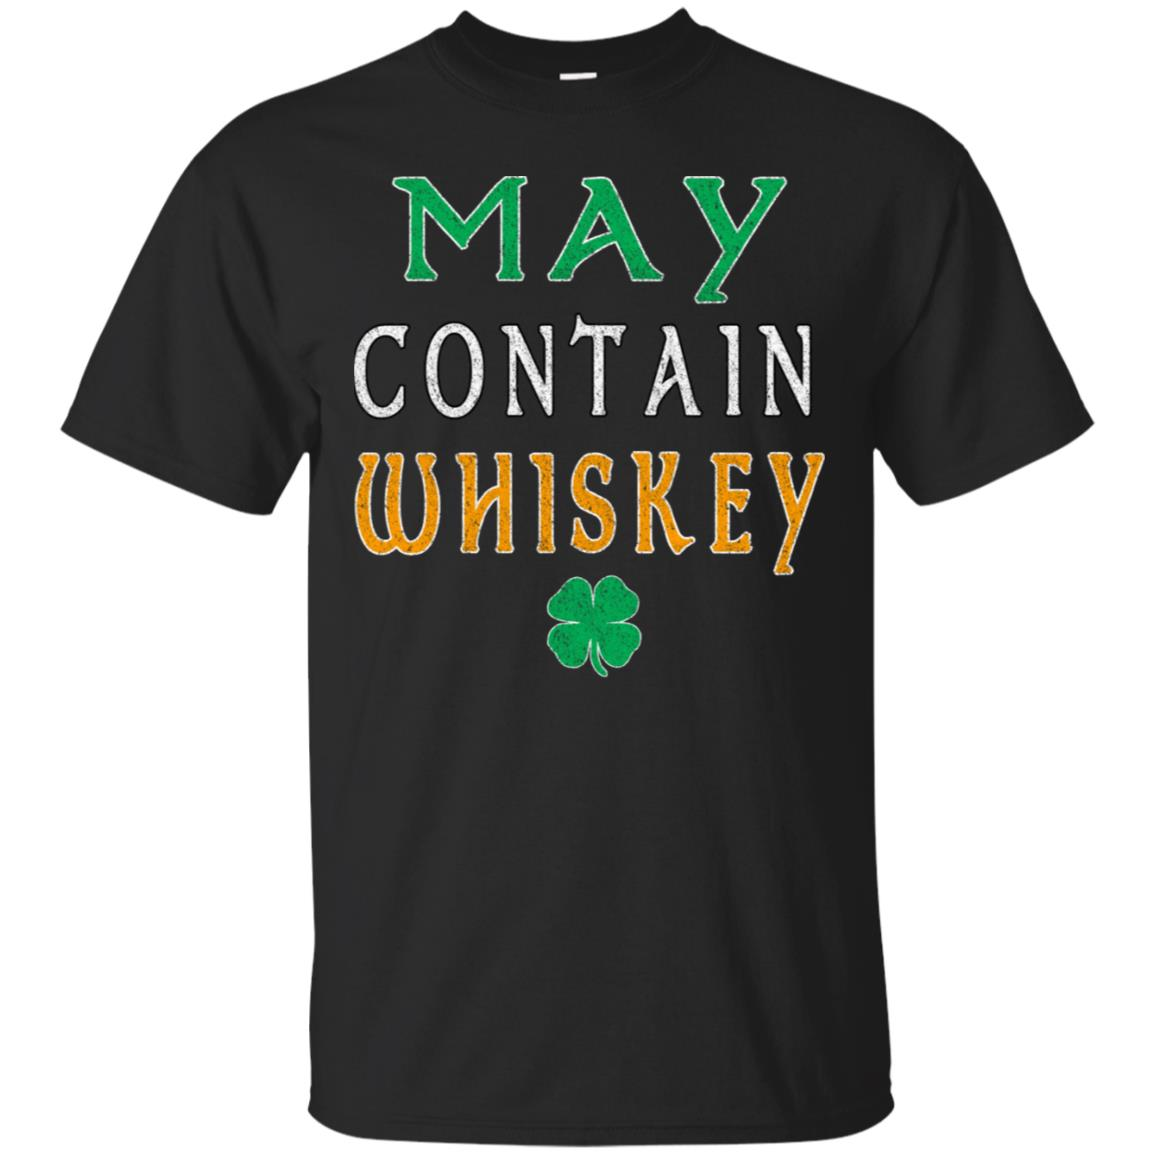 St Patricks Day May Contain Whiskey Shirt for Men and Women 99promocode